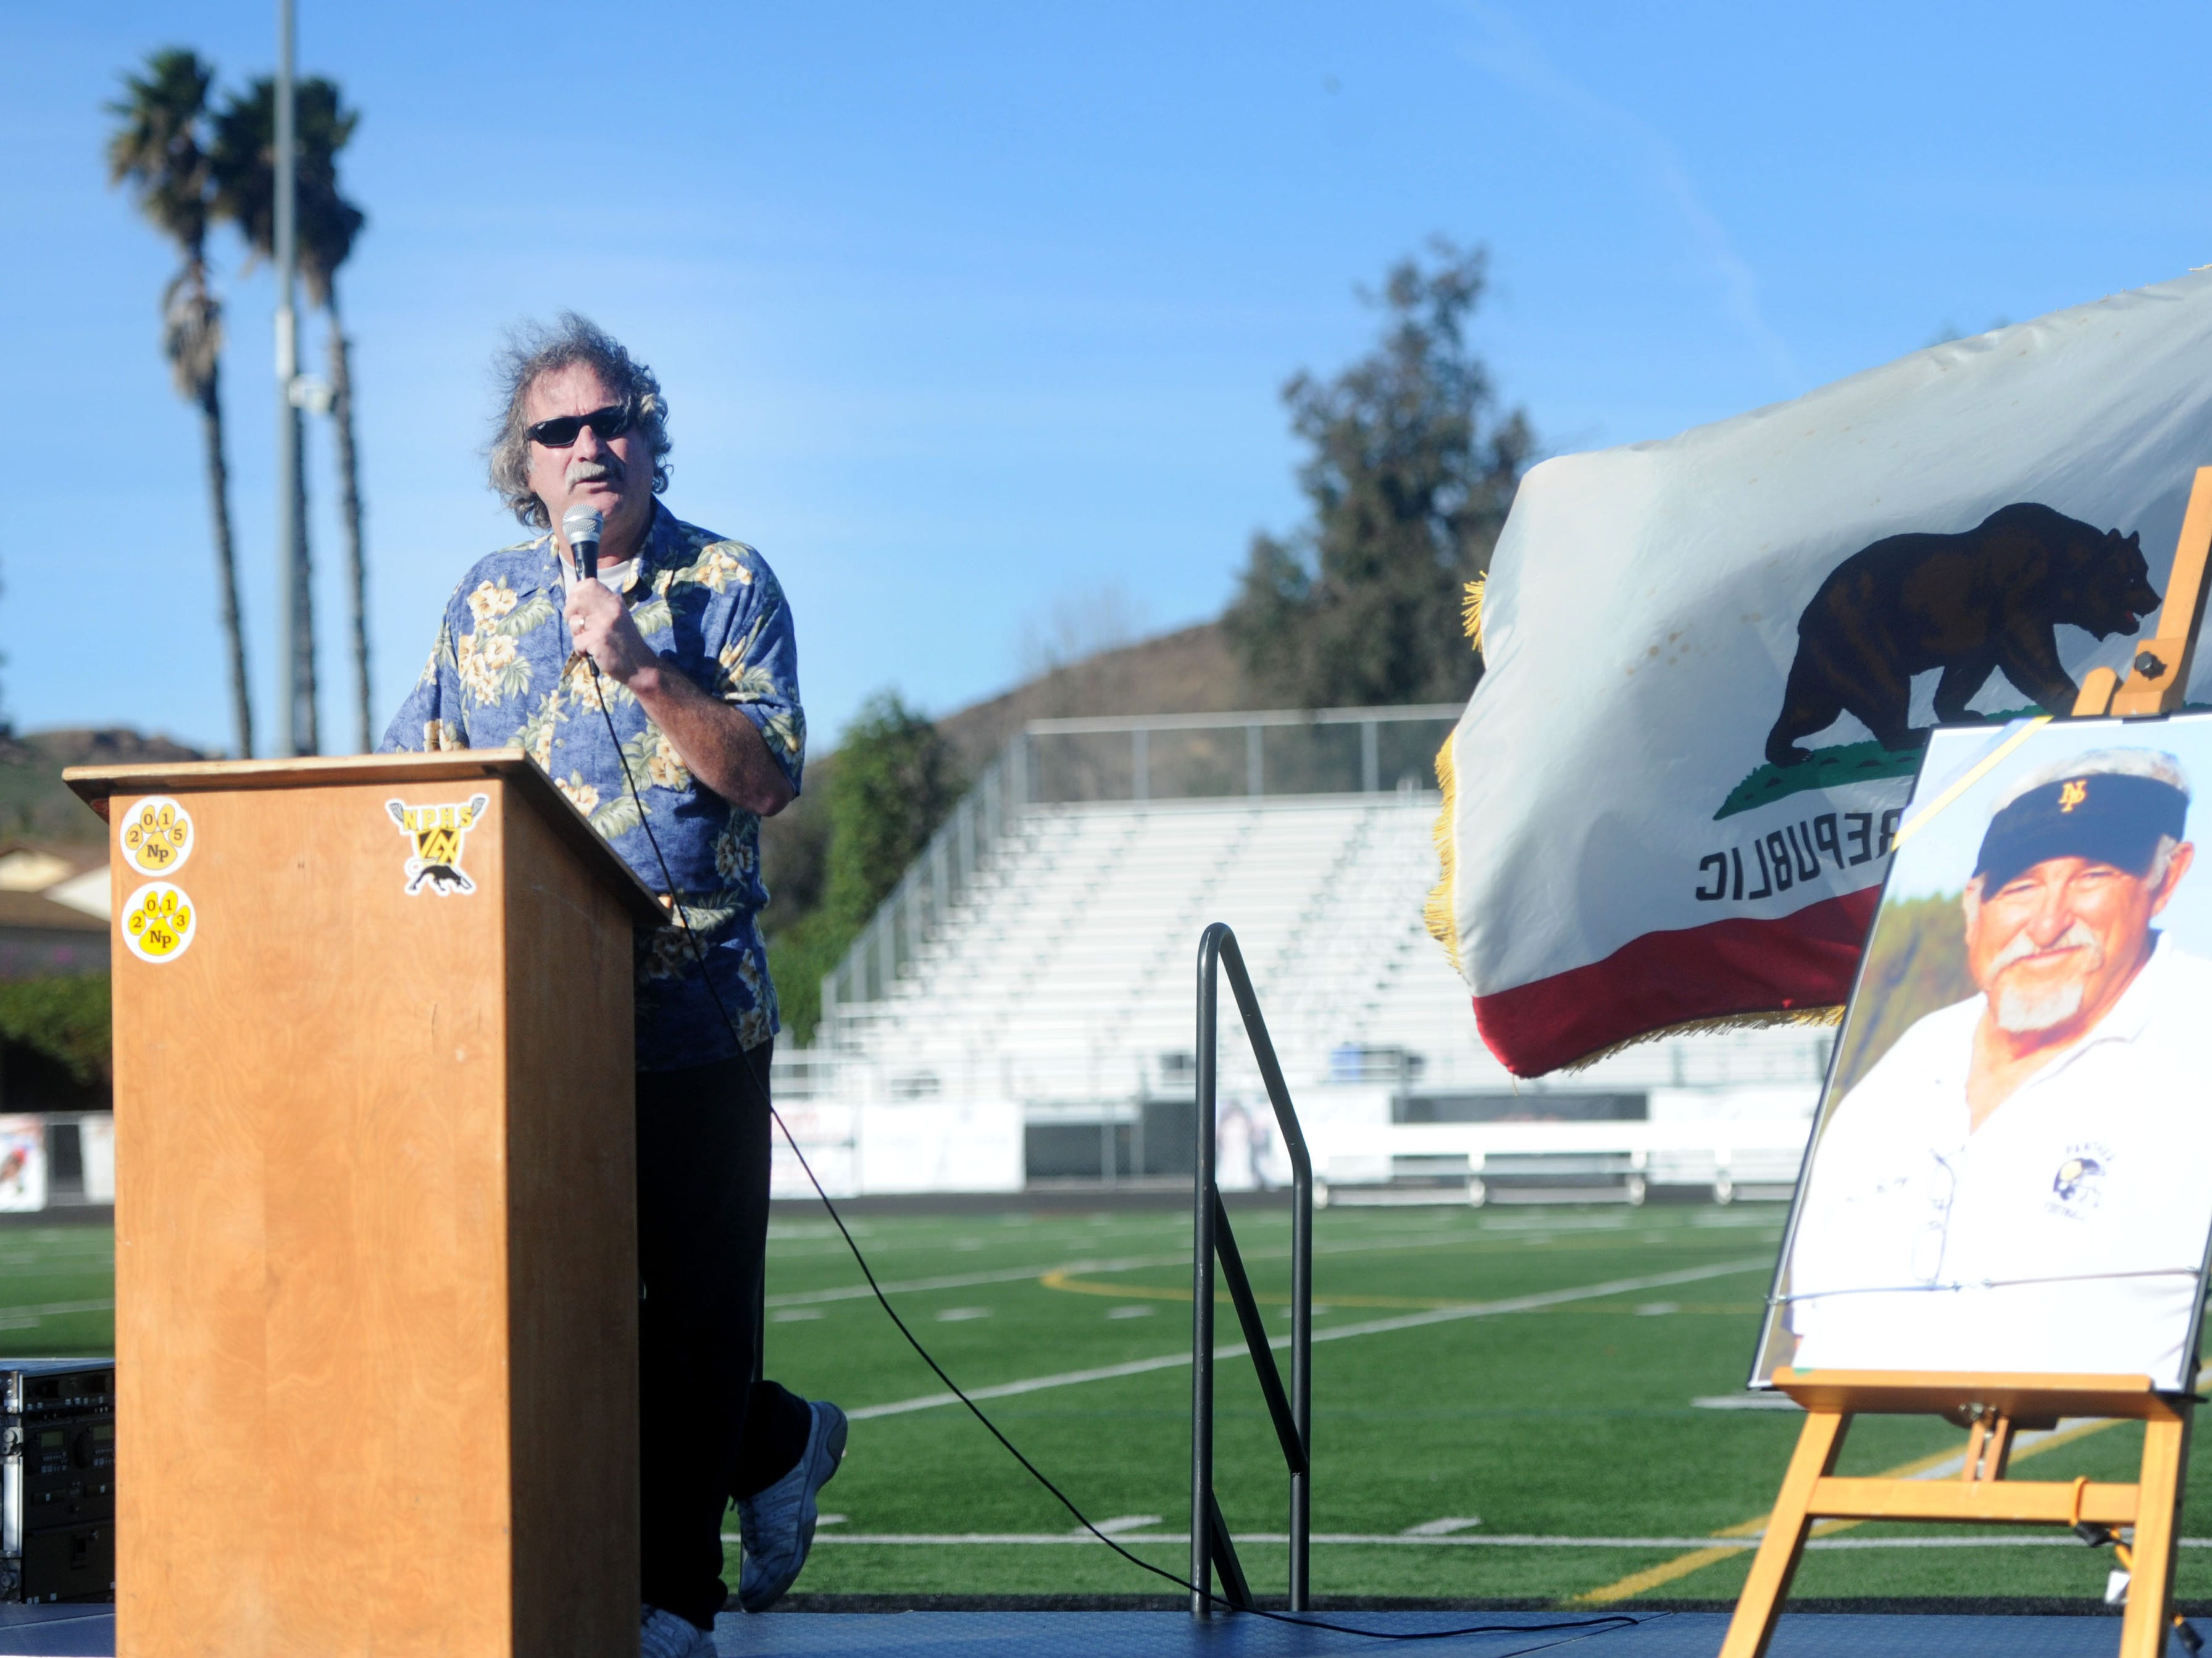 Gary Fabricius, who coached alongside George Hurley before becoming the head football coach at Newbury Park High, speaks during Saturday's tribute to Hurley at the Newbury Park football stadium that bears Hurley's name. Hurley died on Nov. 19.